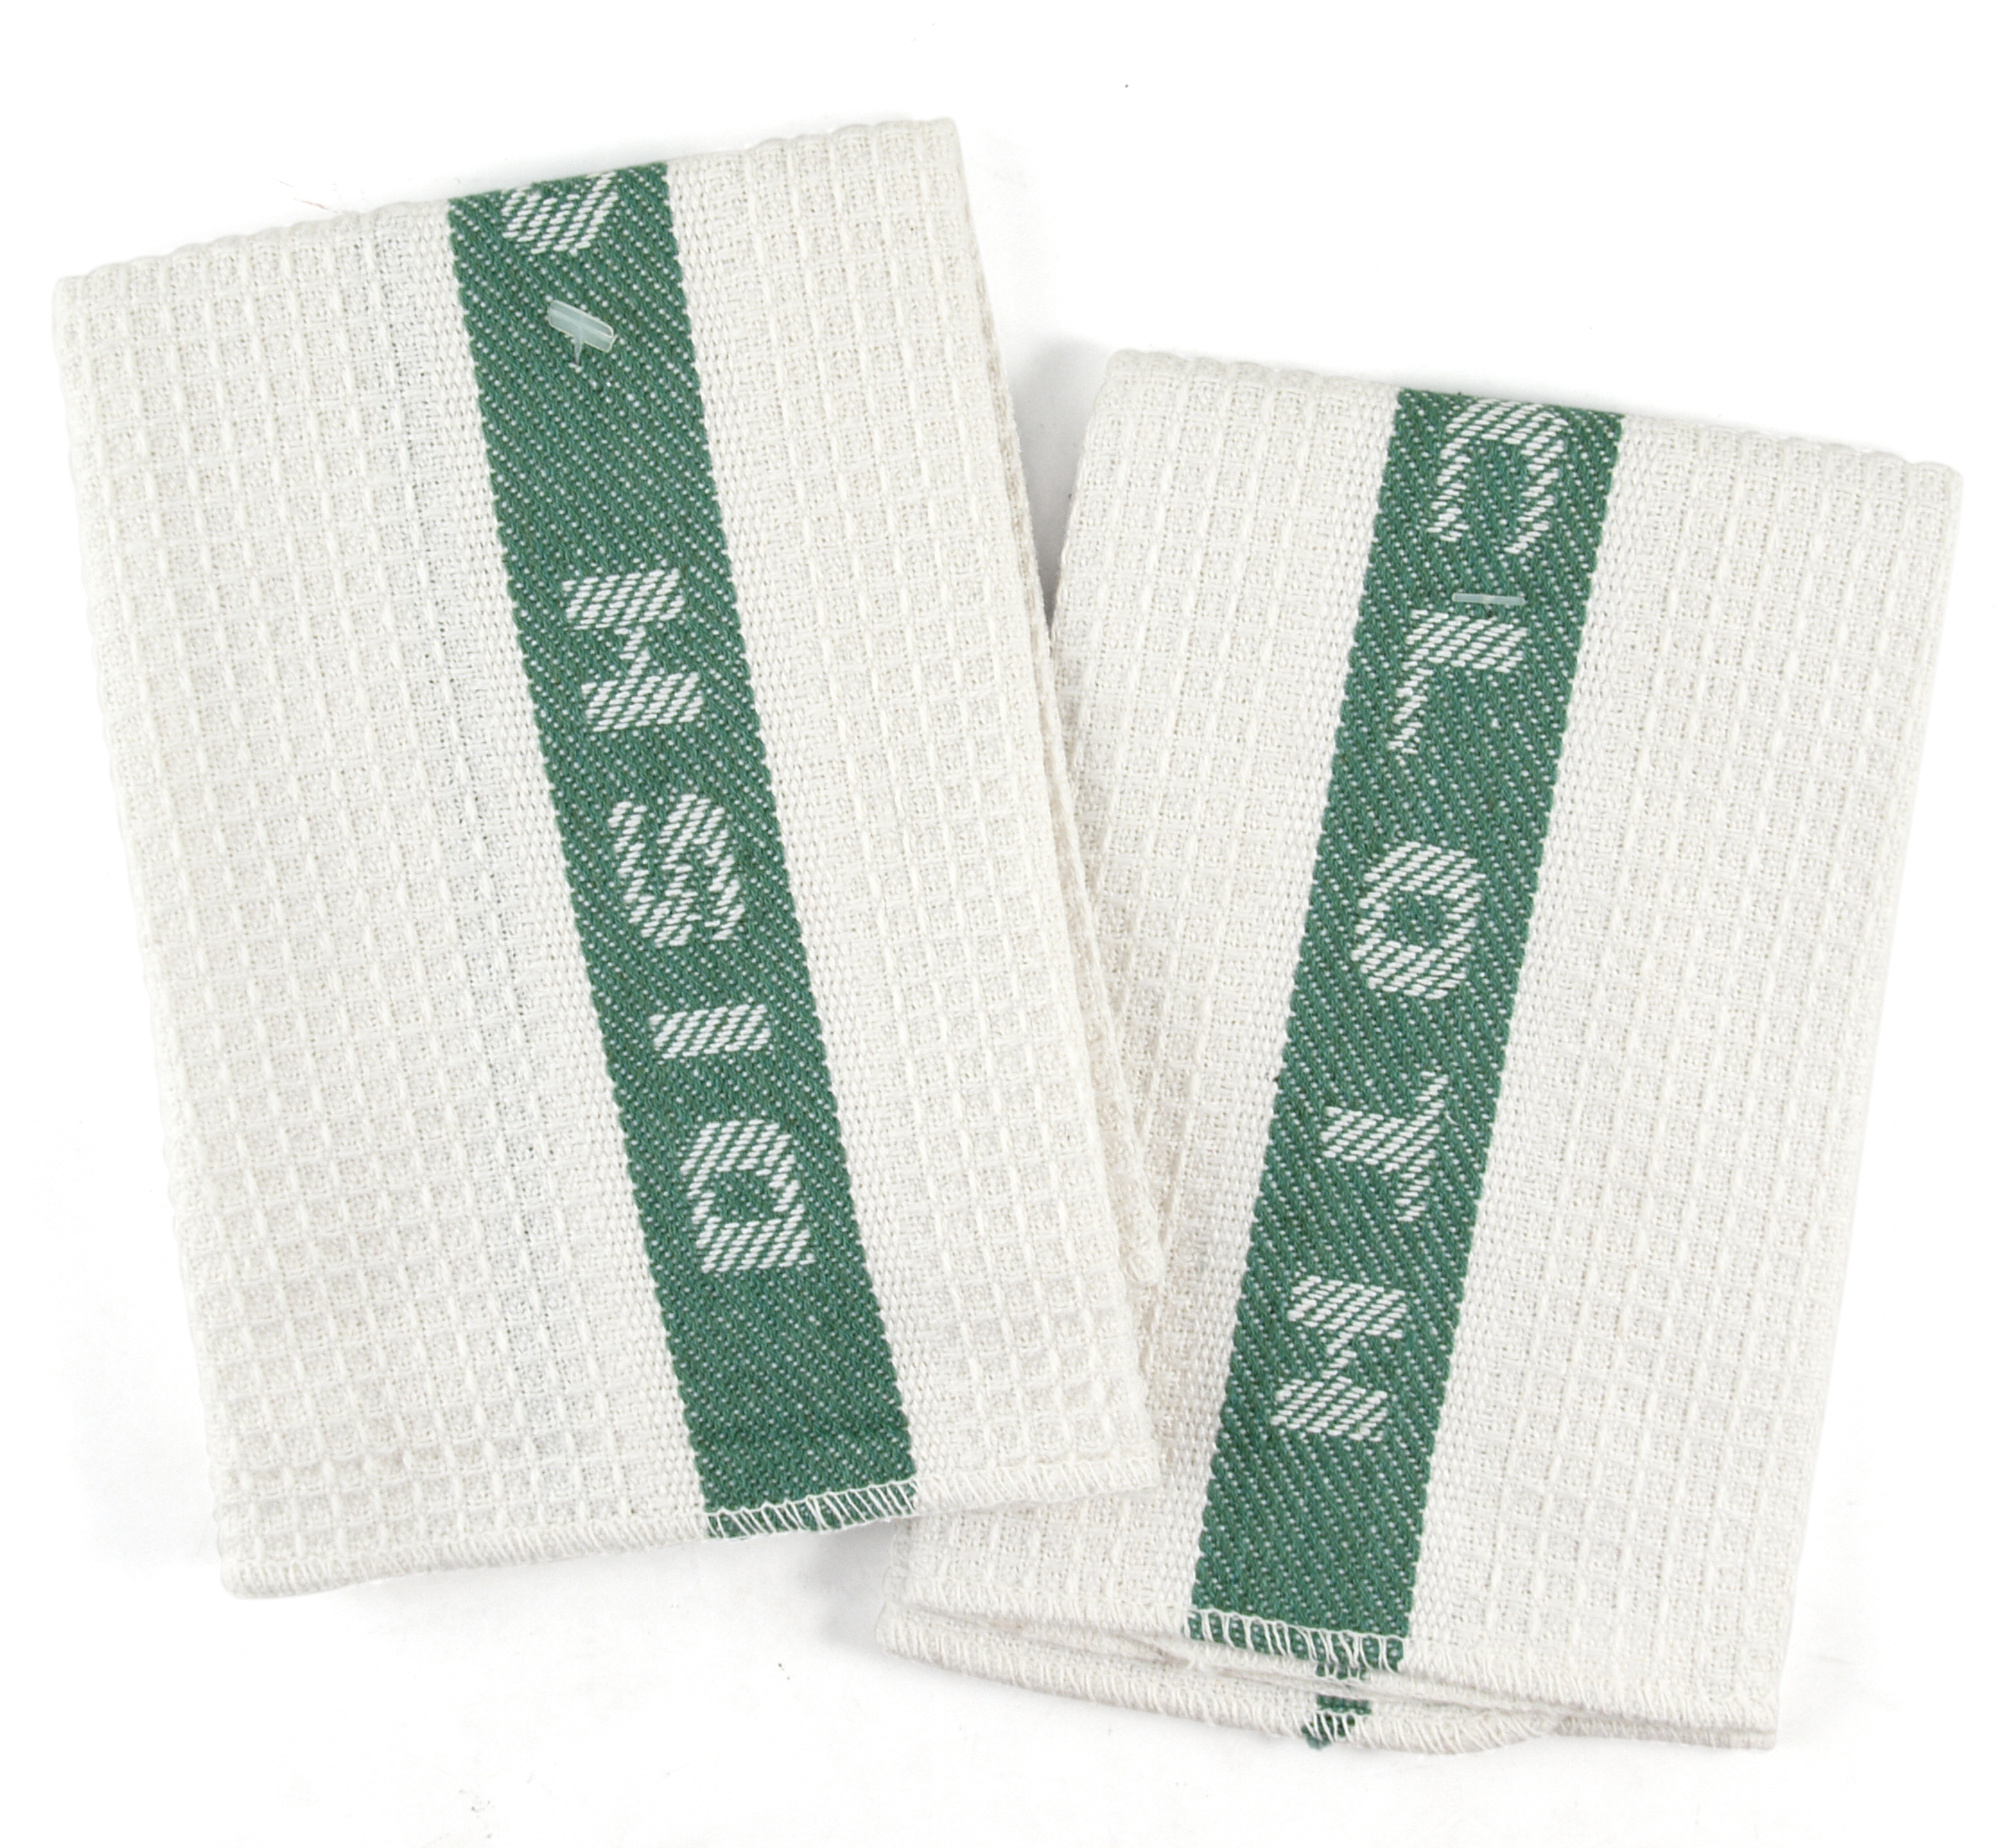 Sage and White Waffle Cotton Kitchen Dish Cloth, Set of 6